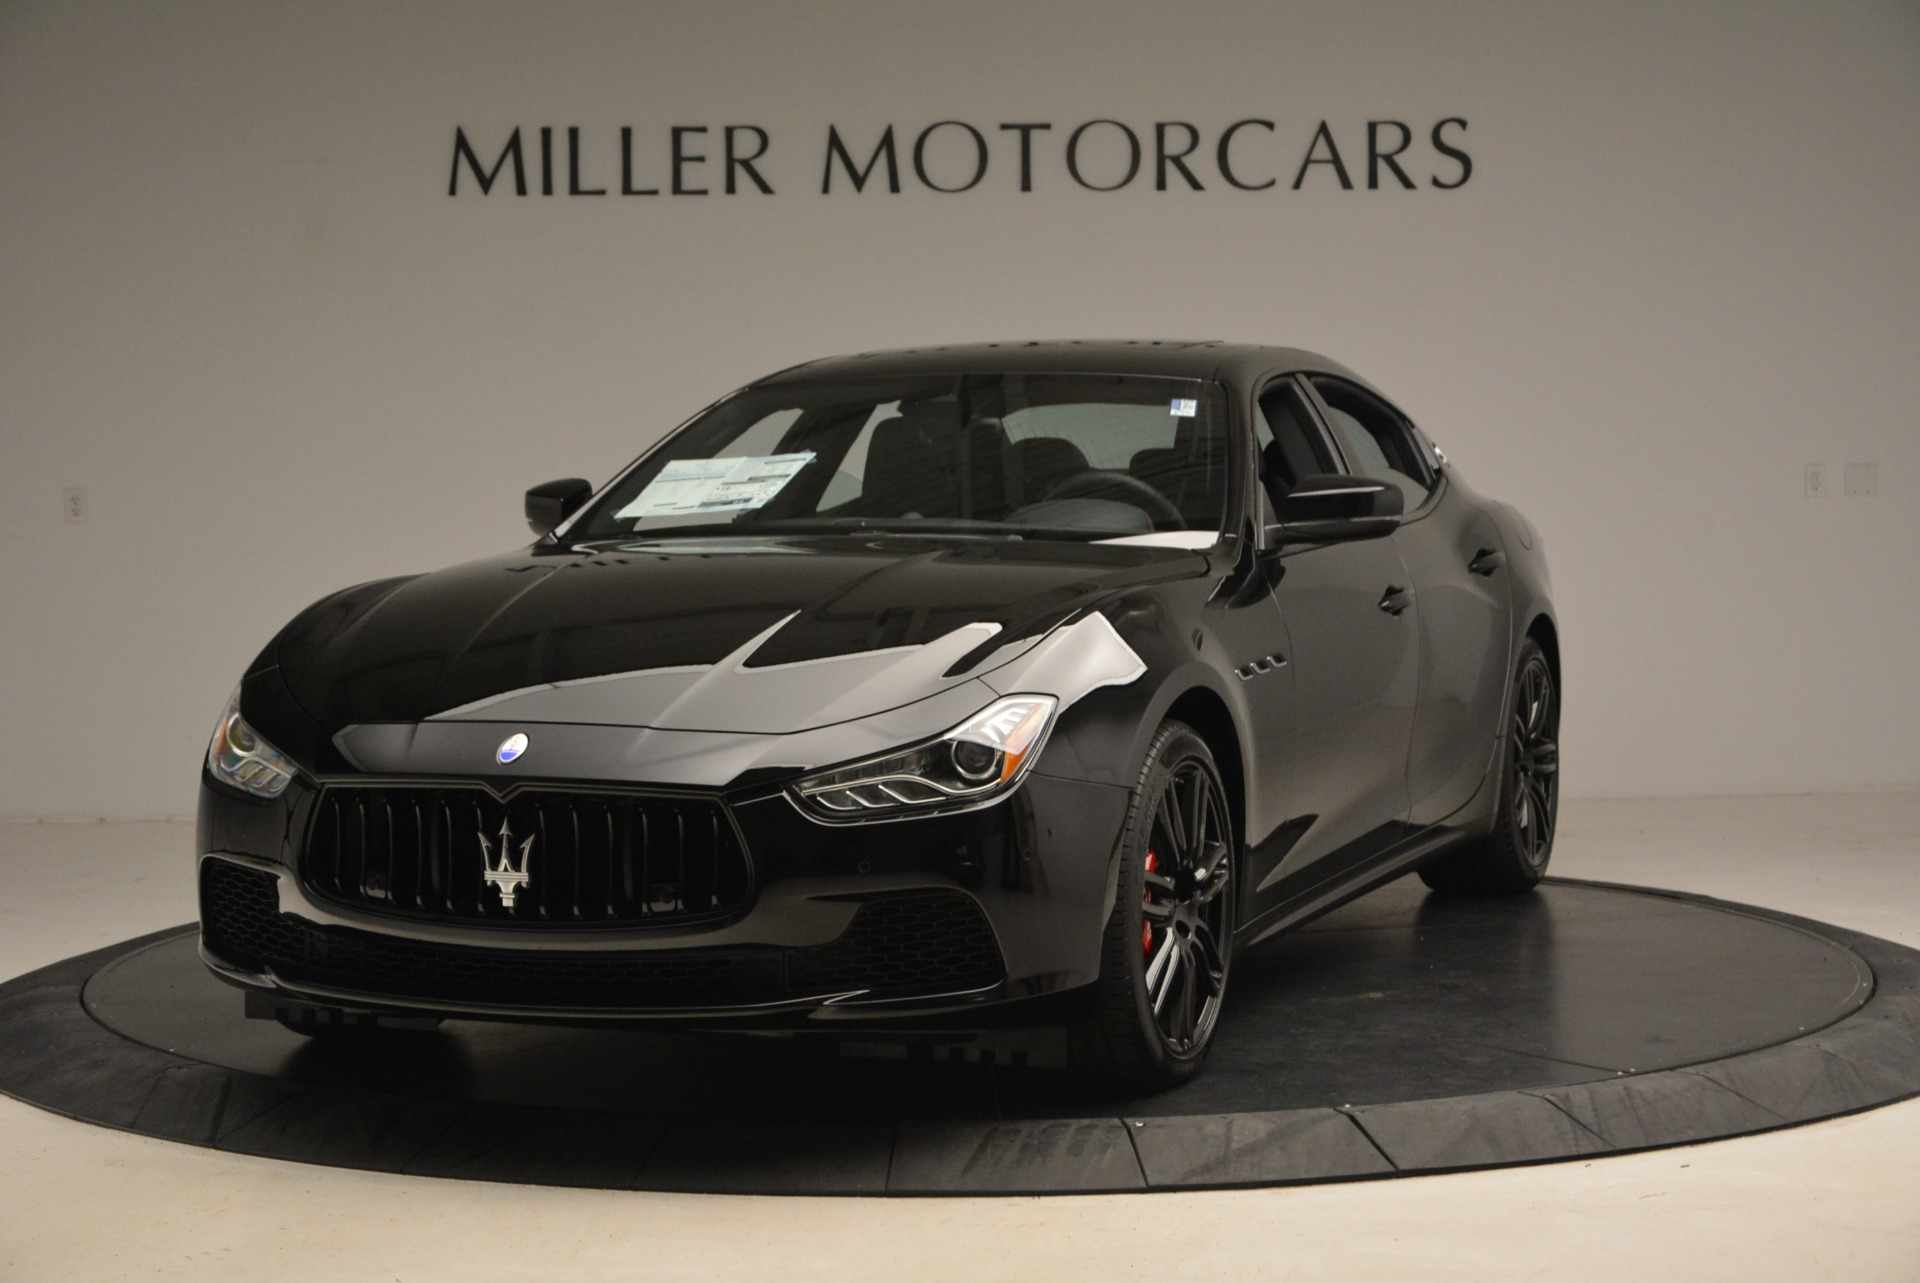 New 2017 Maserati Ghibli Nerissimo Edition S Q4 For Sale In Westport, CT 1405_main